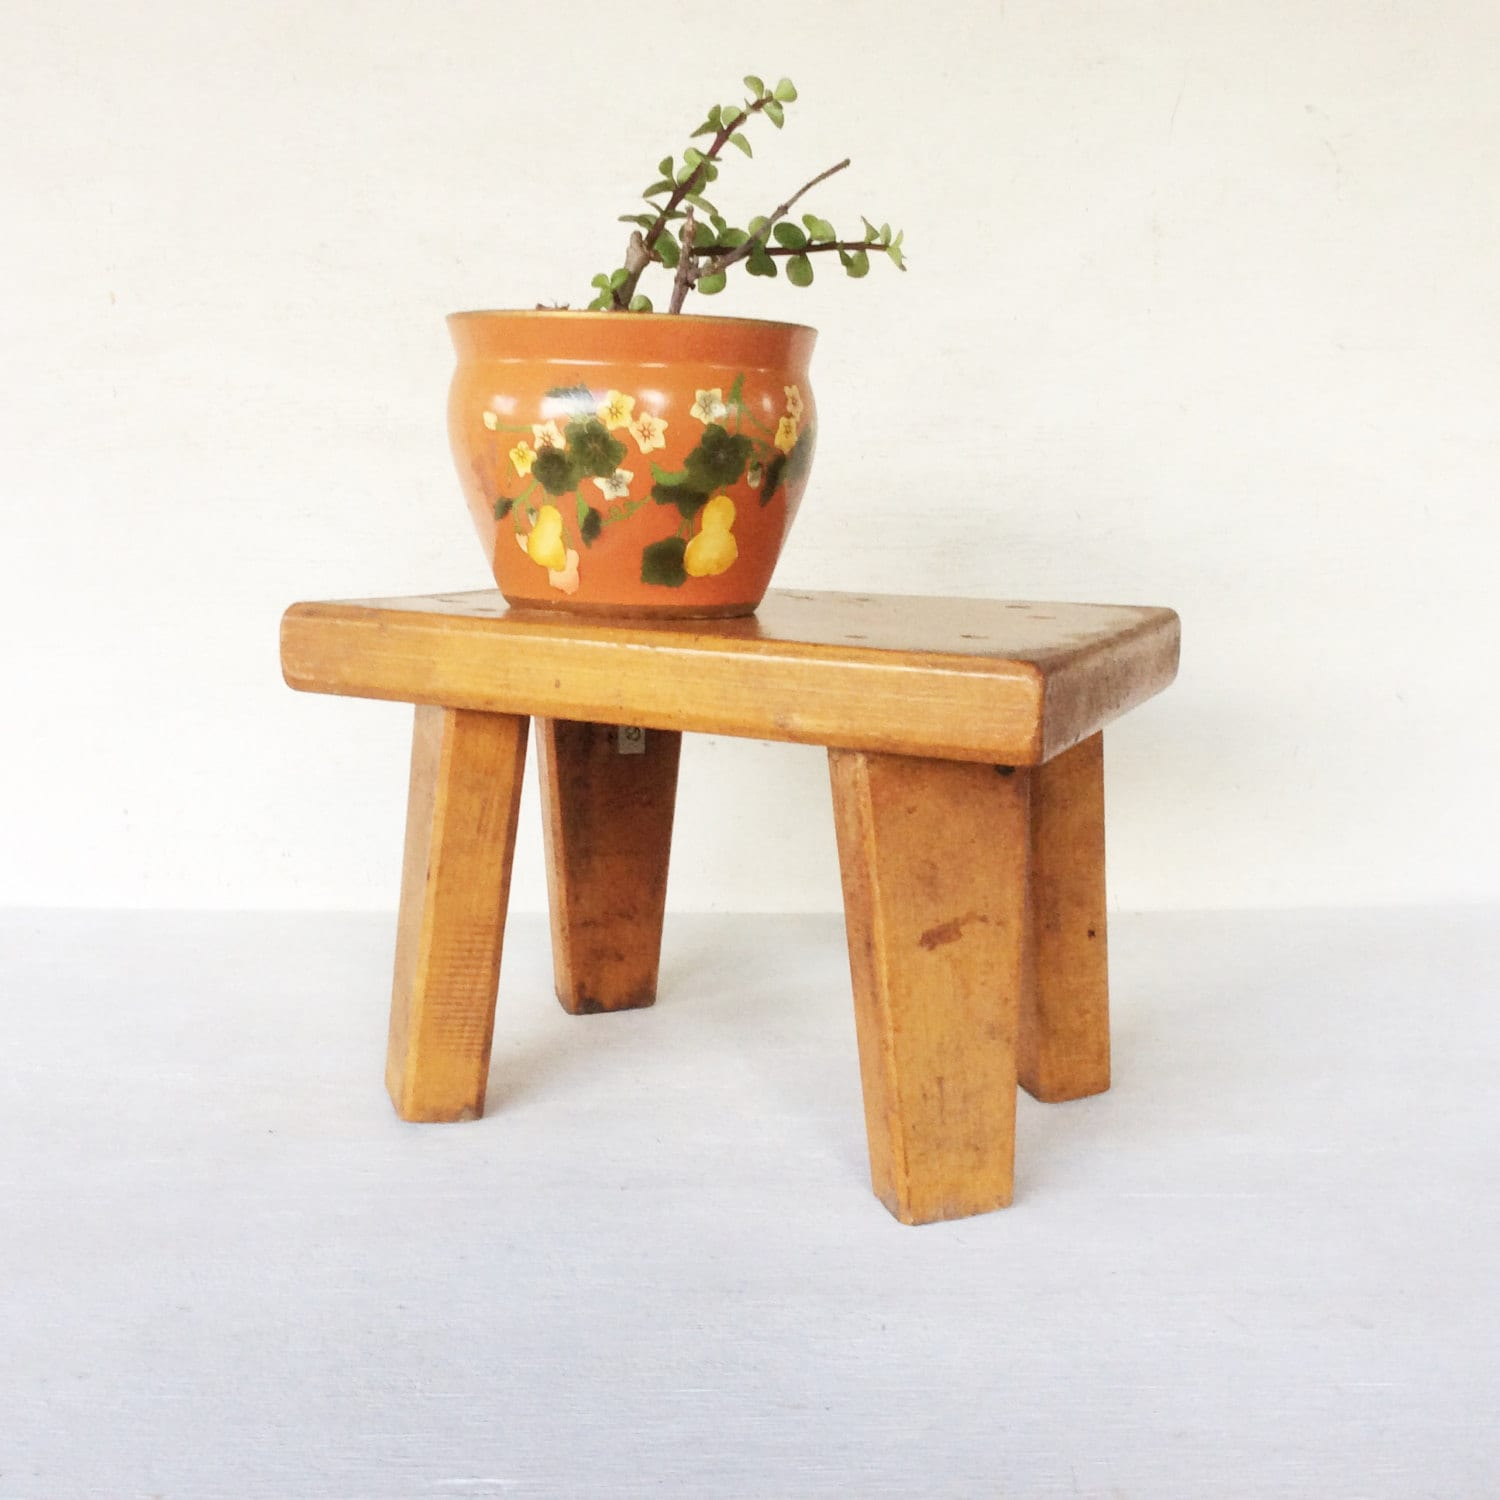 Rustic Farmhouse Style Small Solid Wood Step Stool Vintage